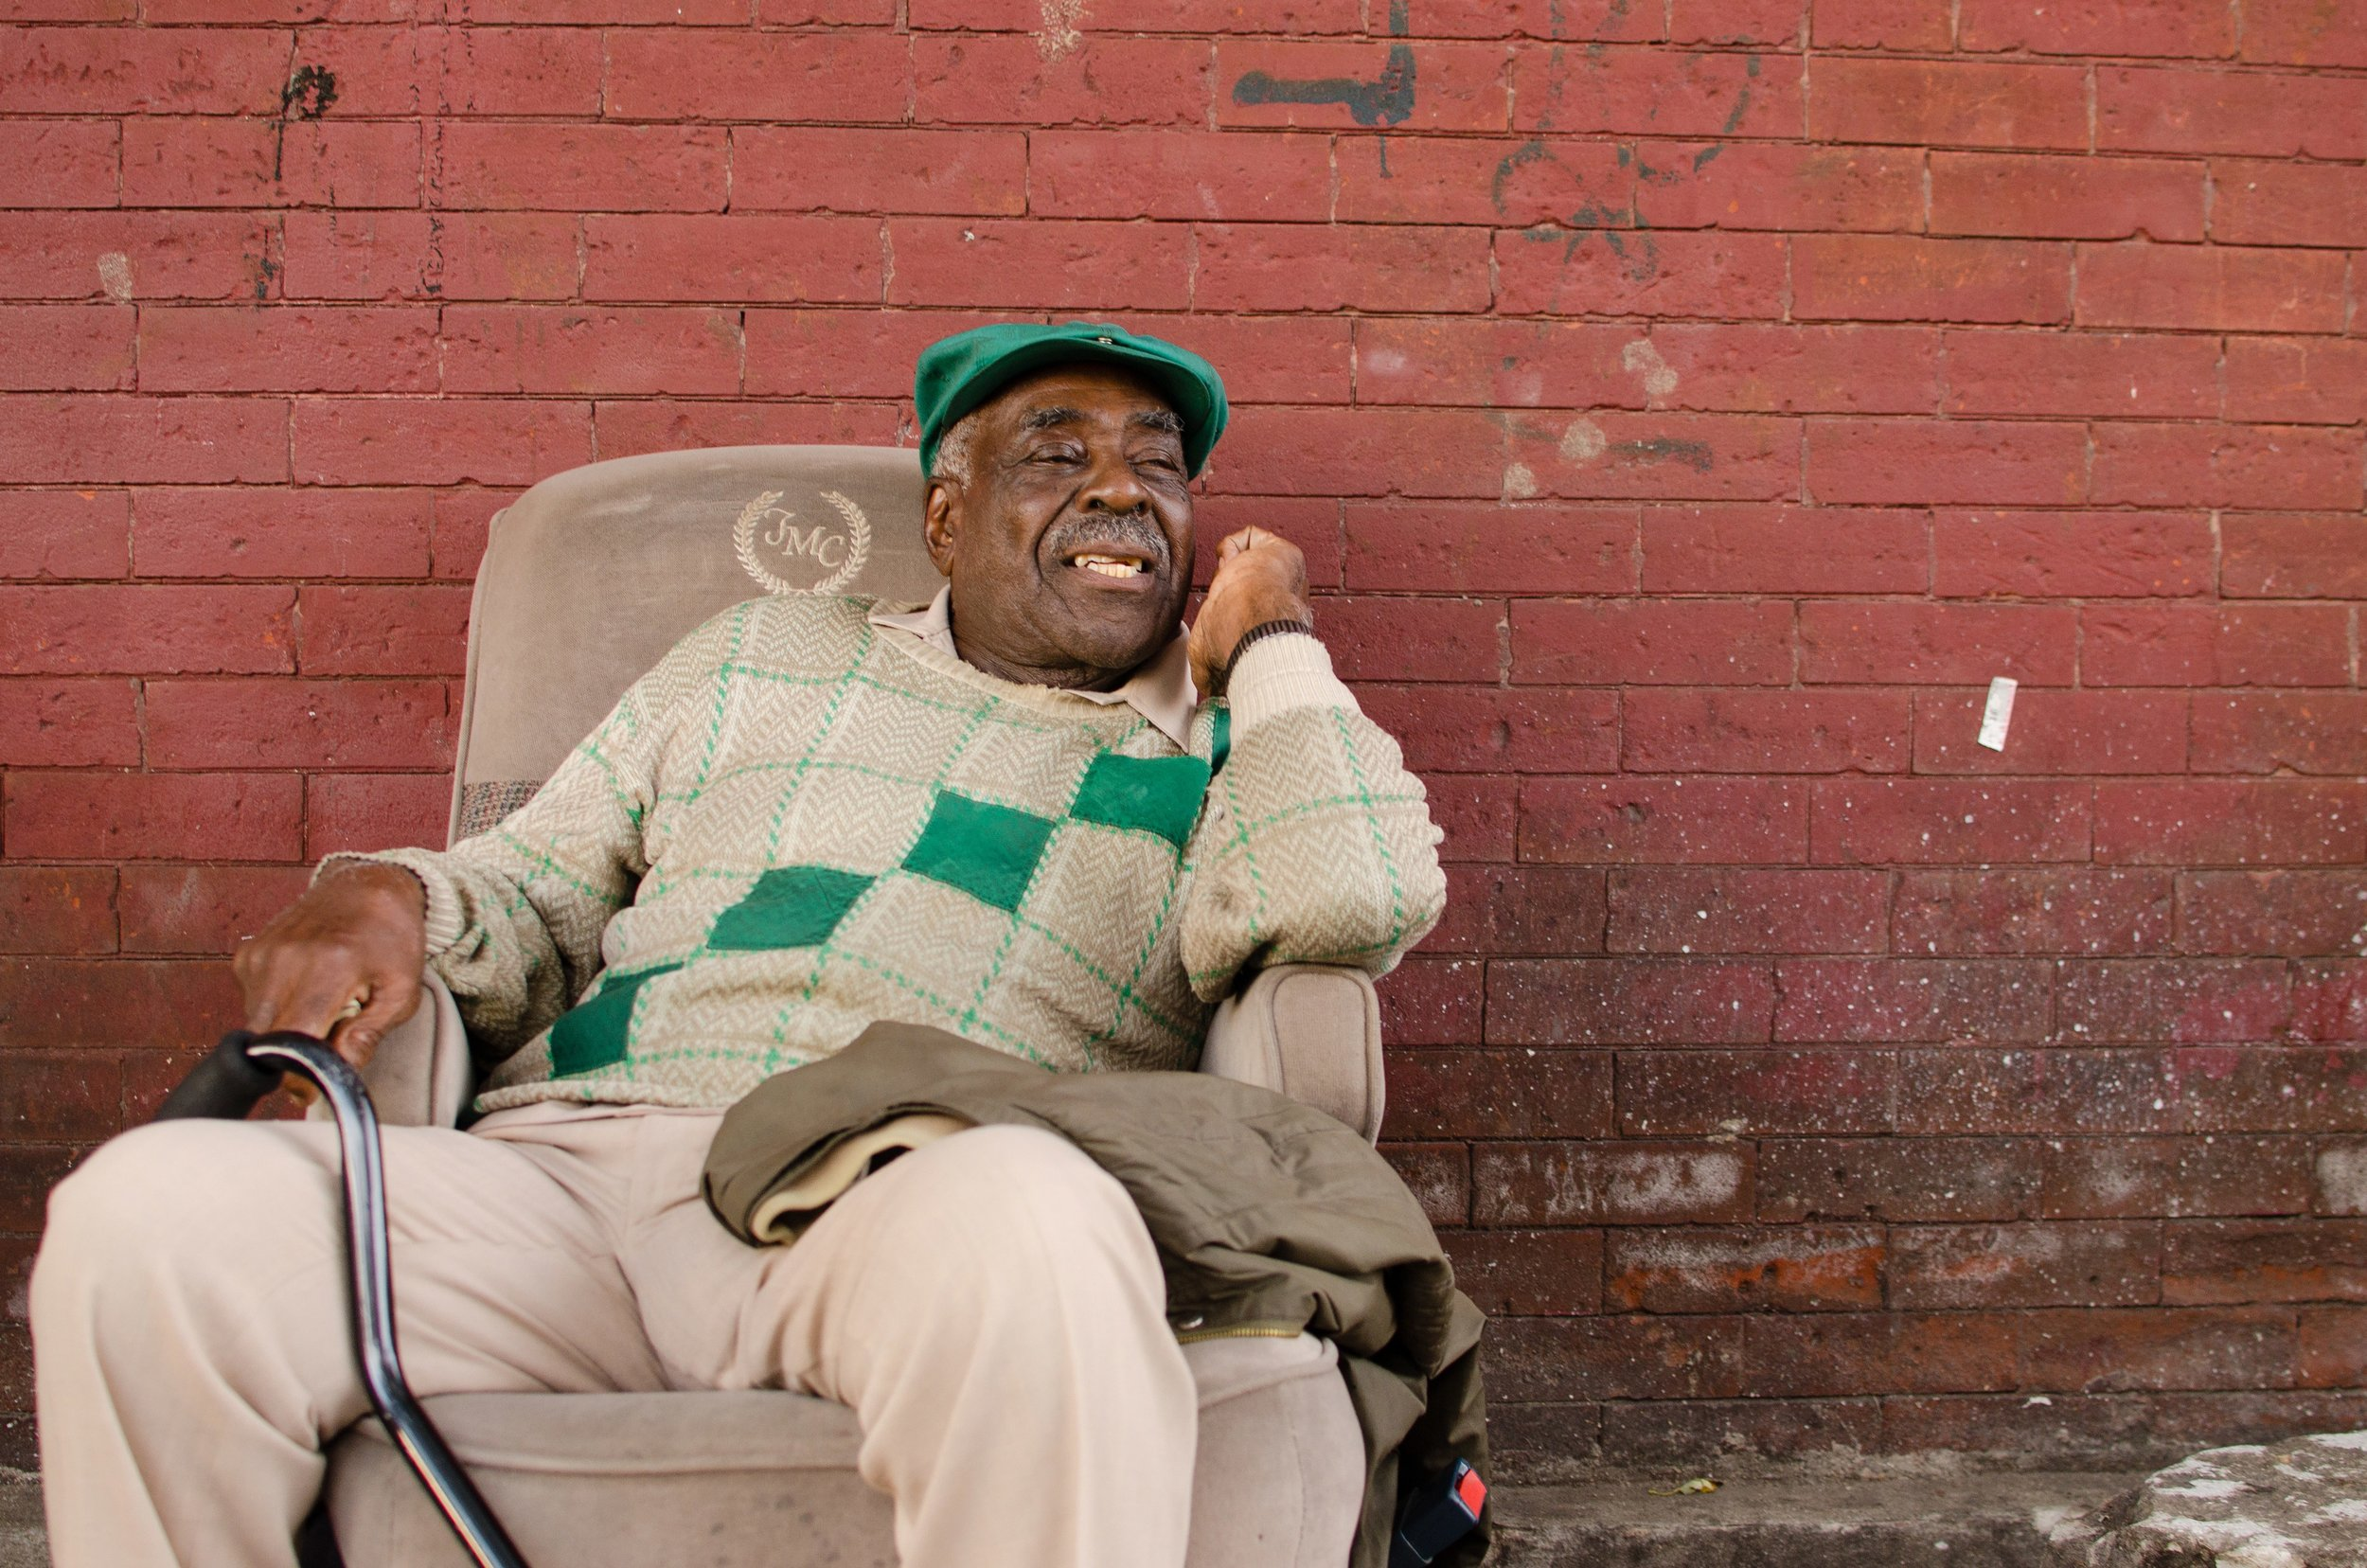 Image: An older Black man reclines in a tan suede chair with his left elbow resting on the chair's armrest. His metal cane rests on his right leg. Behind him is a red brick wall with markings and imperfections on it. He gazes to the right of the camera with a open-mouthed smile on his face. He is wearing beige slacks, a beige shirt and a green, white, and a beige sweater with a green hat. Photo courtesy of the artist.